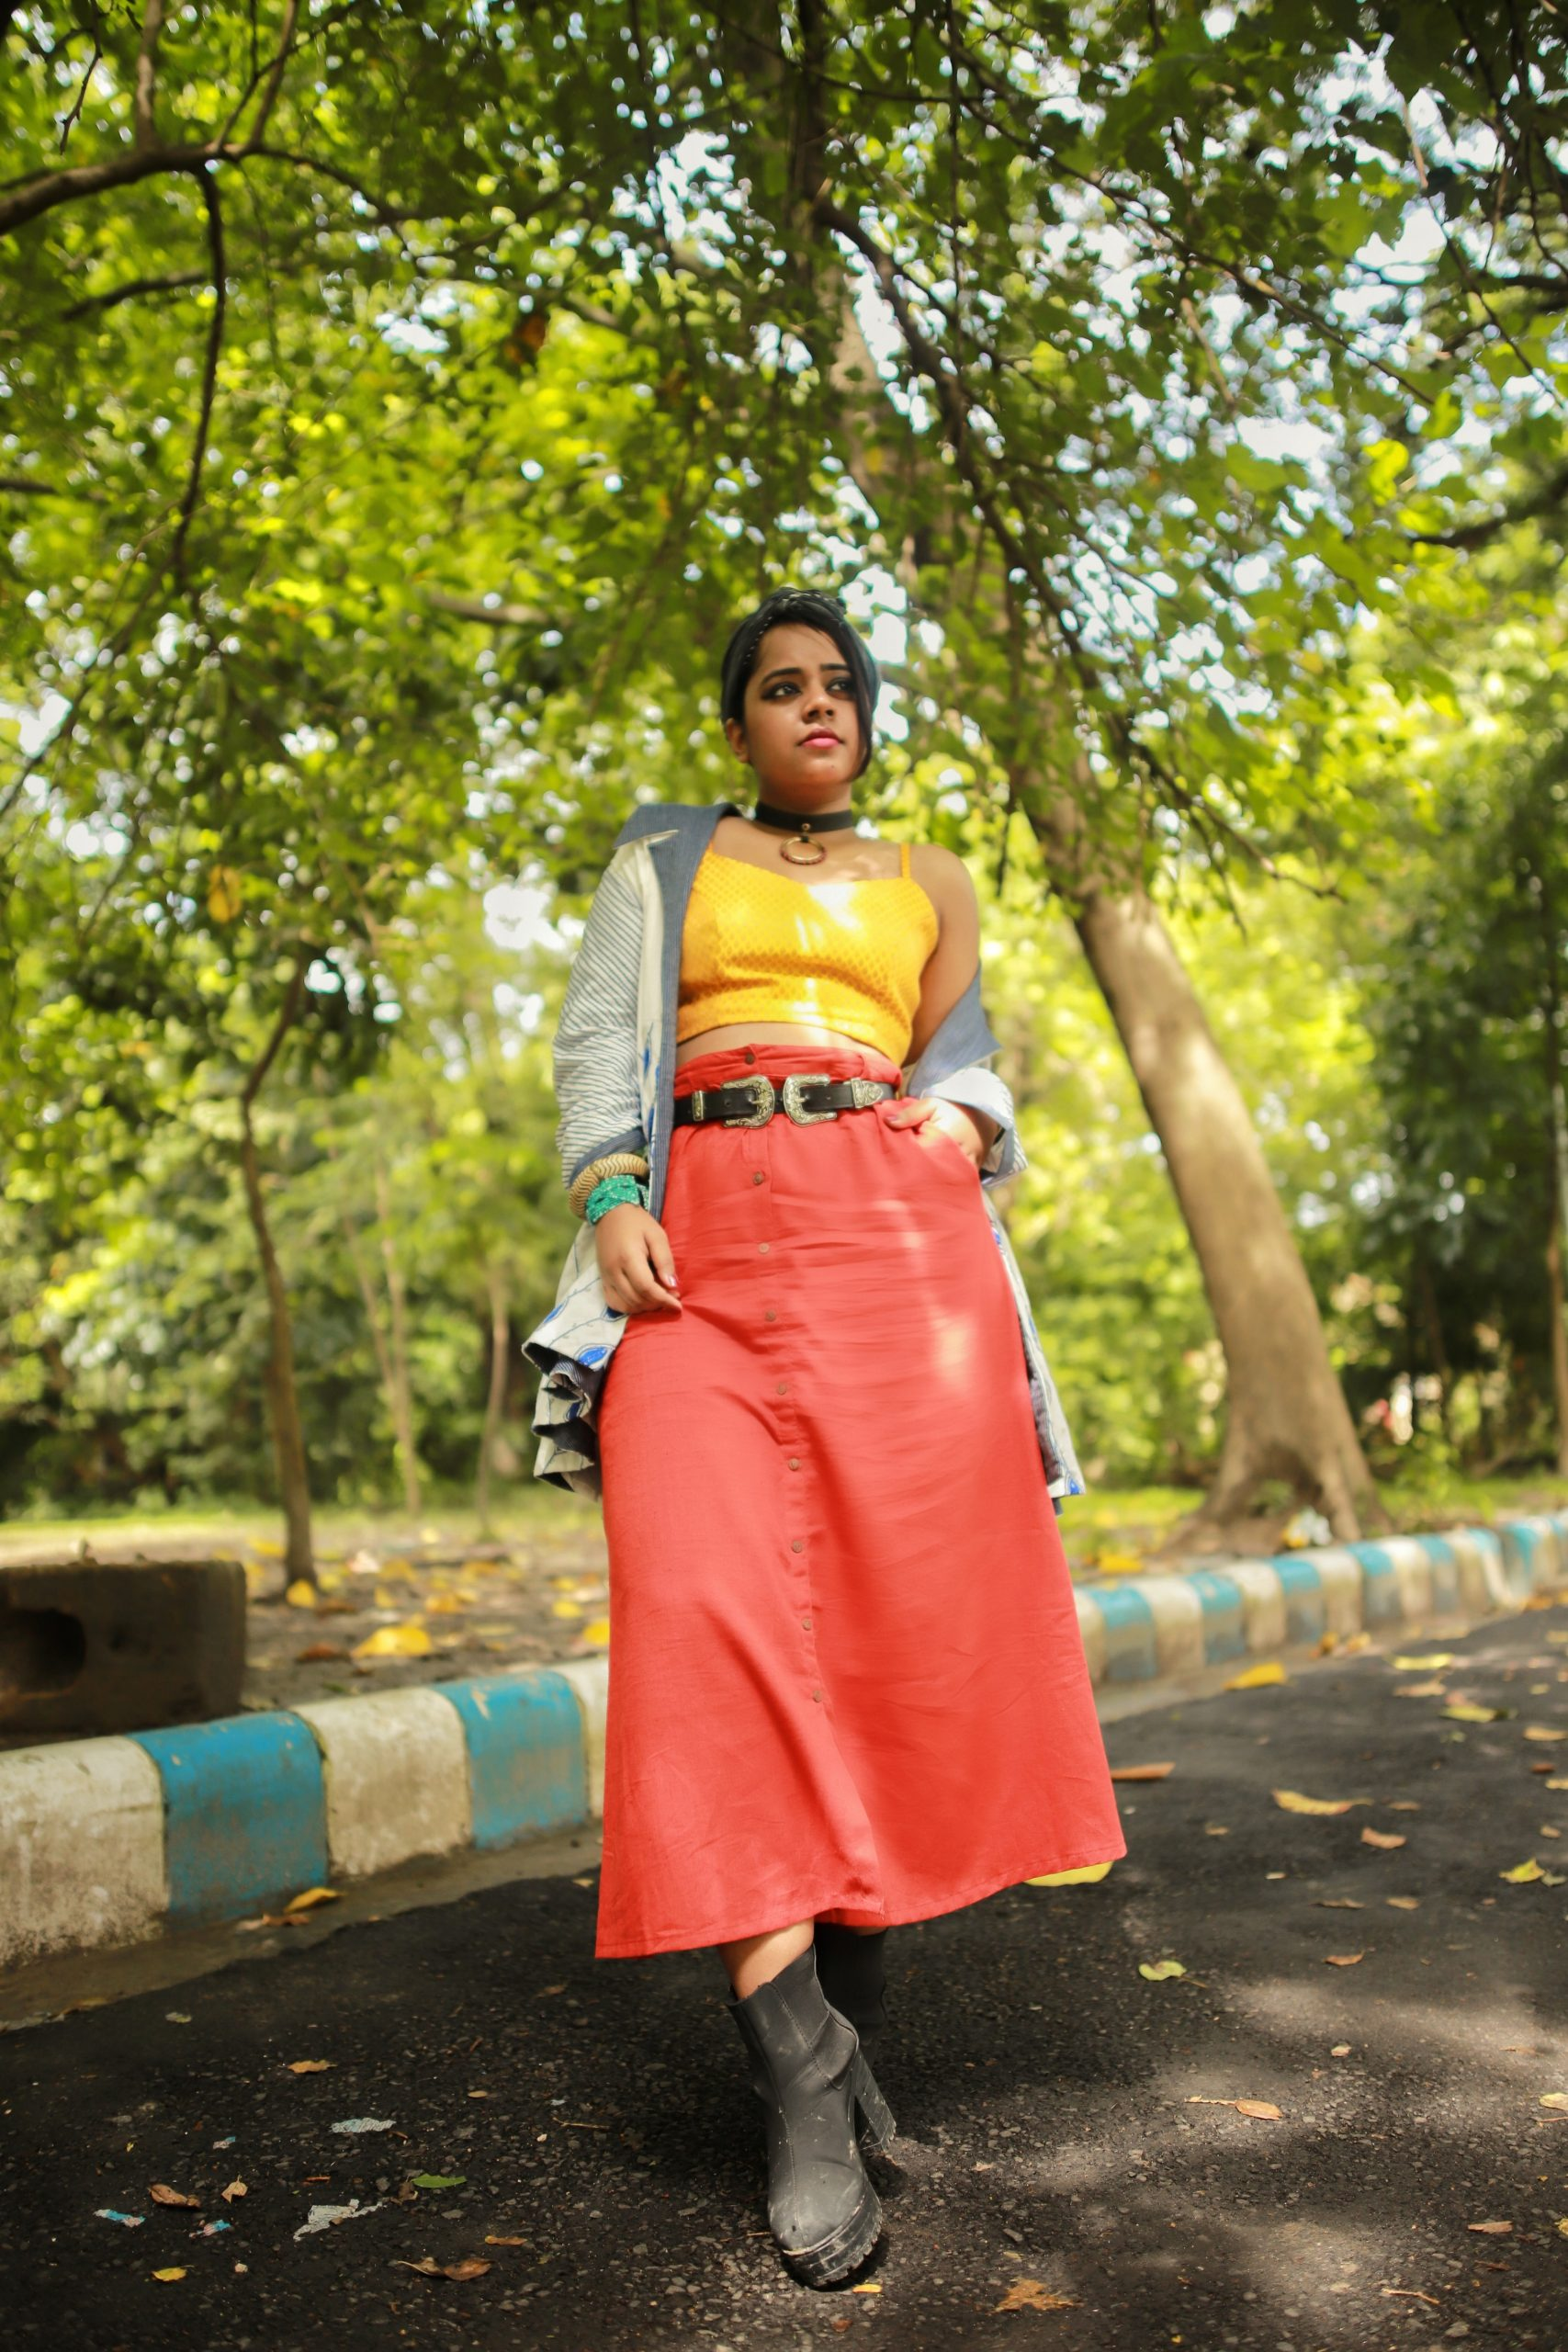 The brocade tops with a belted long skirt looks chic and smart